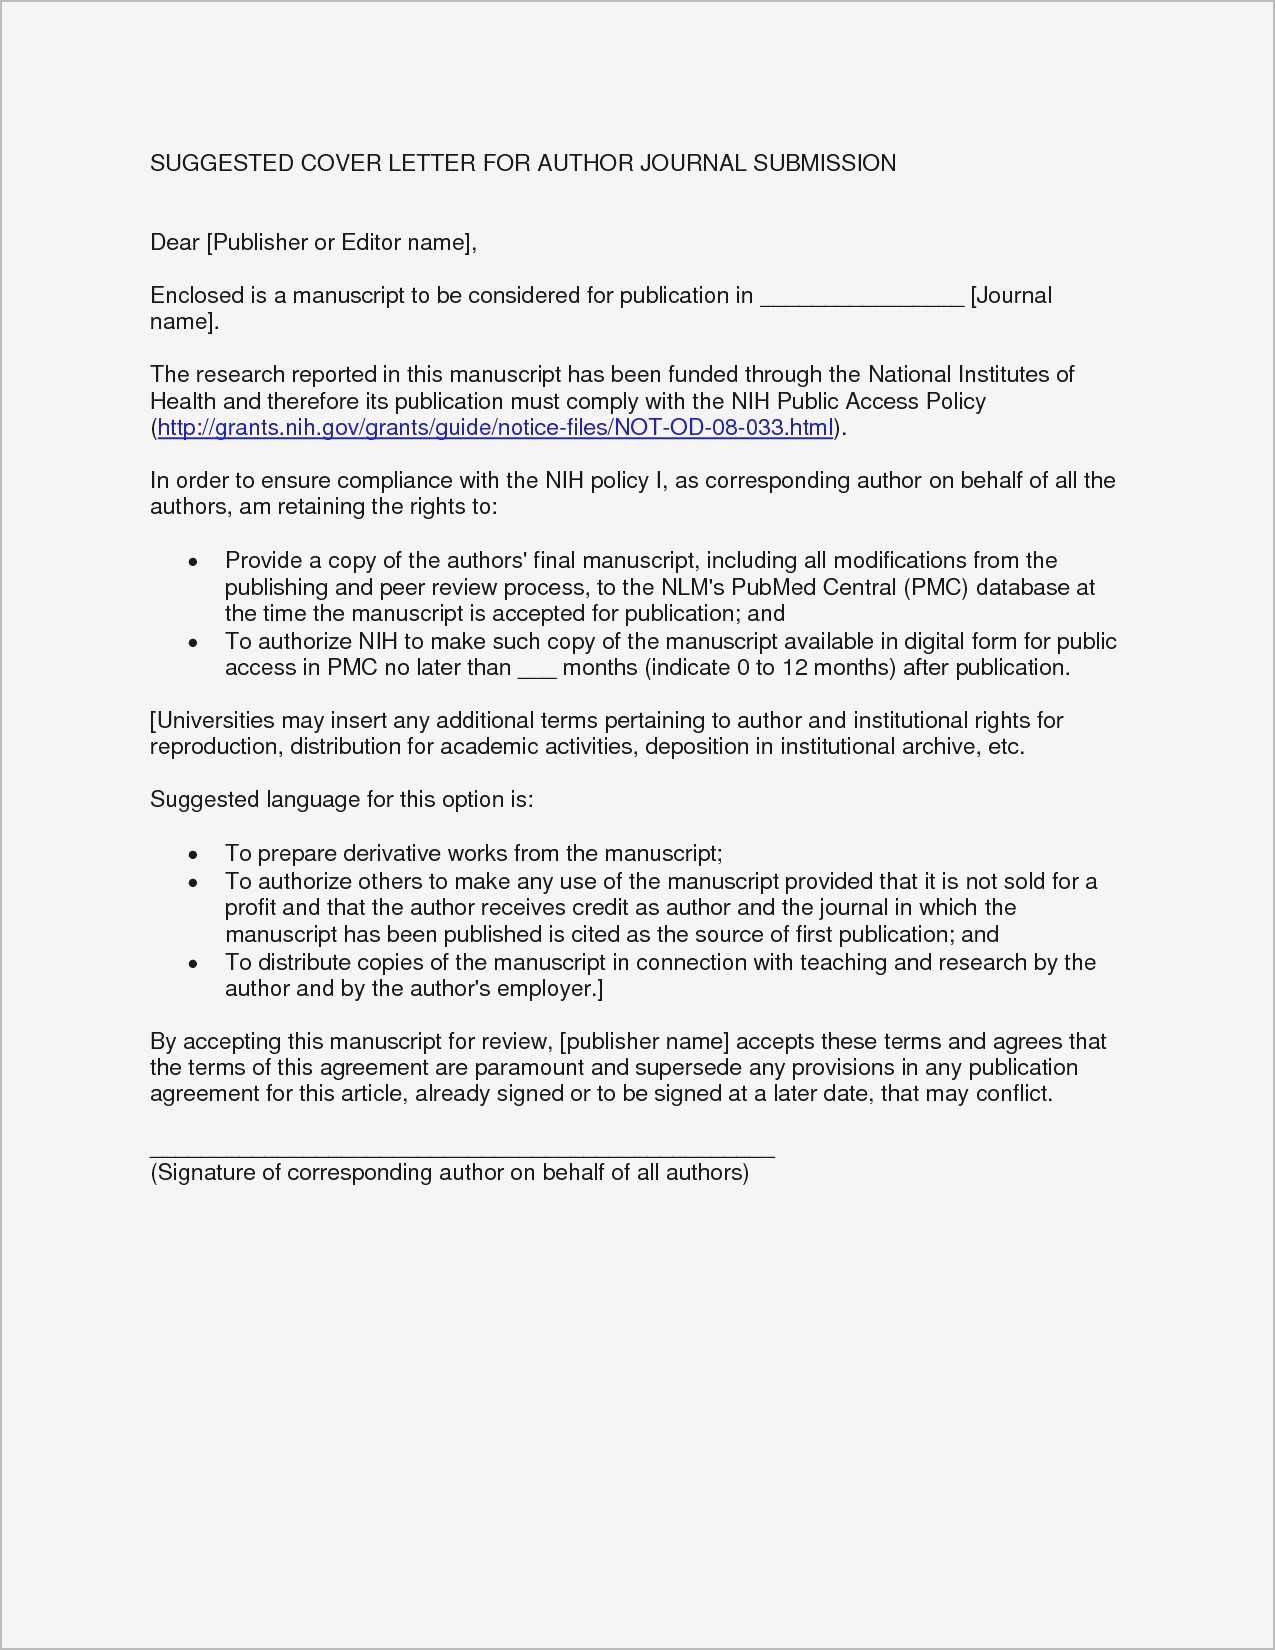 Fax Cover Letter Template Google Docs - Writing Business Requirements Template Best Fax Cover Letter